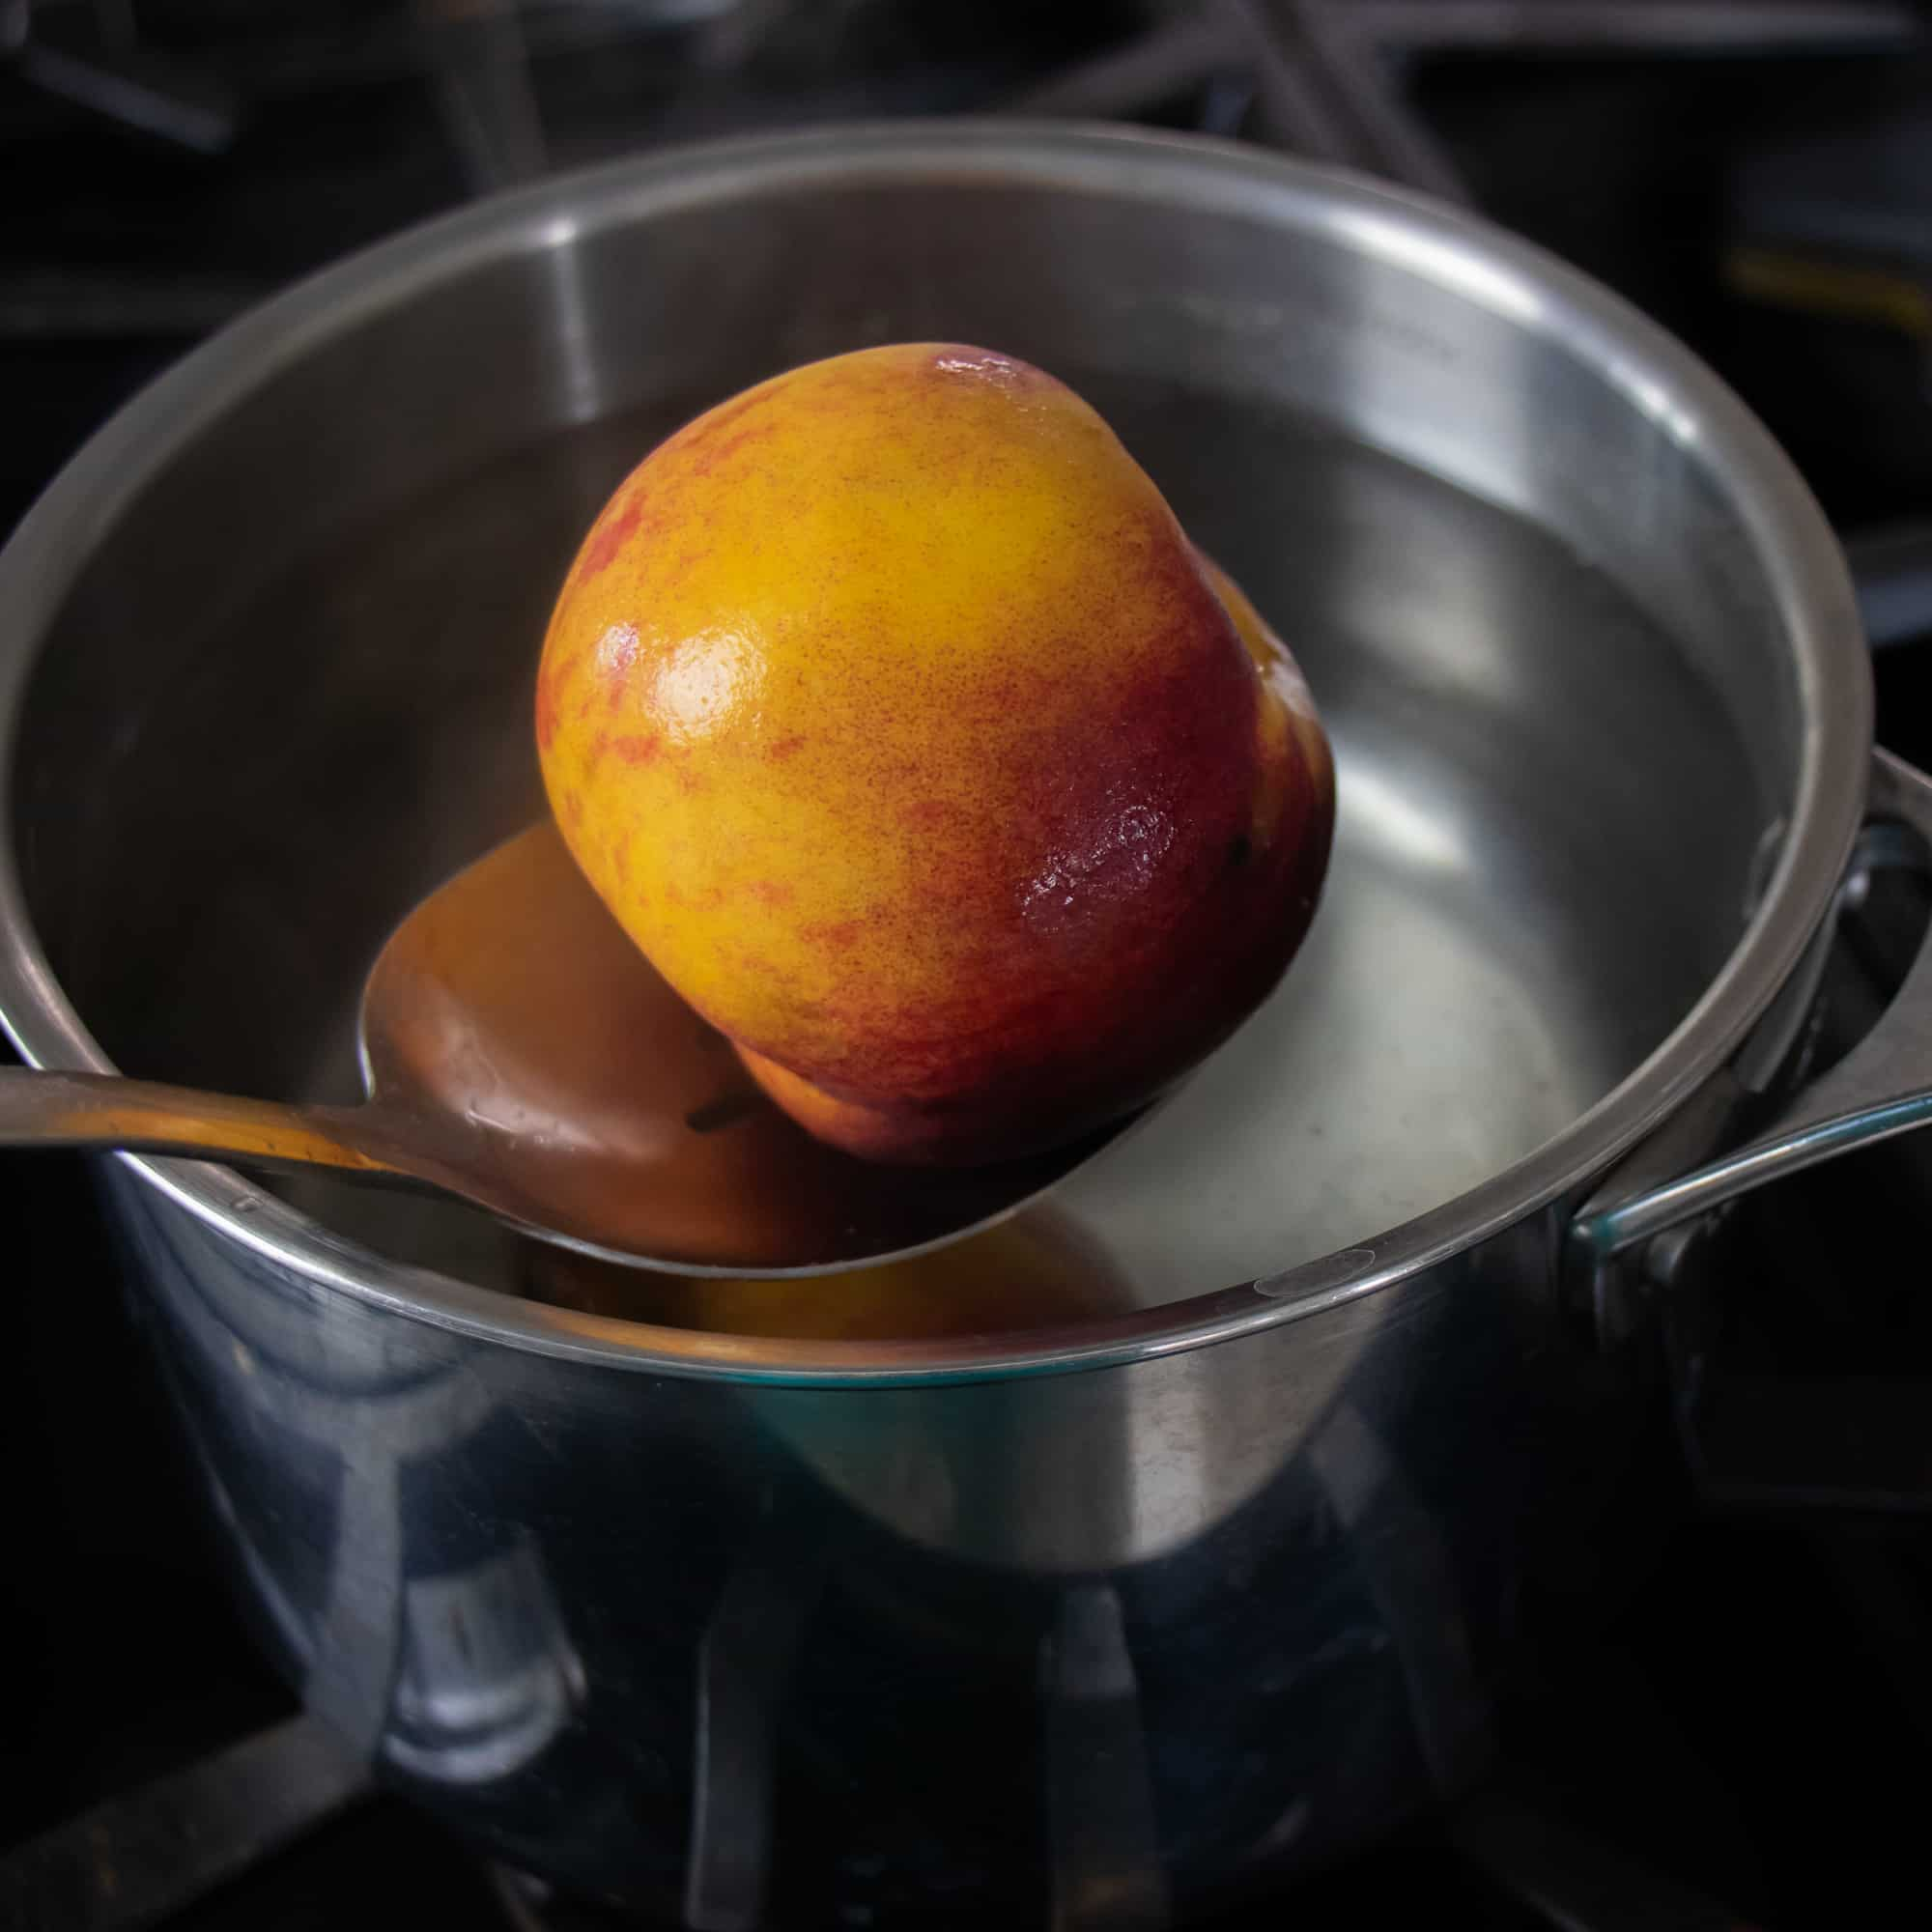 Take the peaches out with a slotted spoon